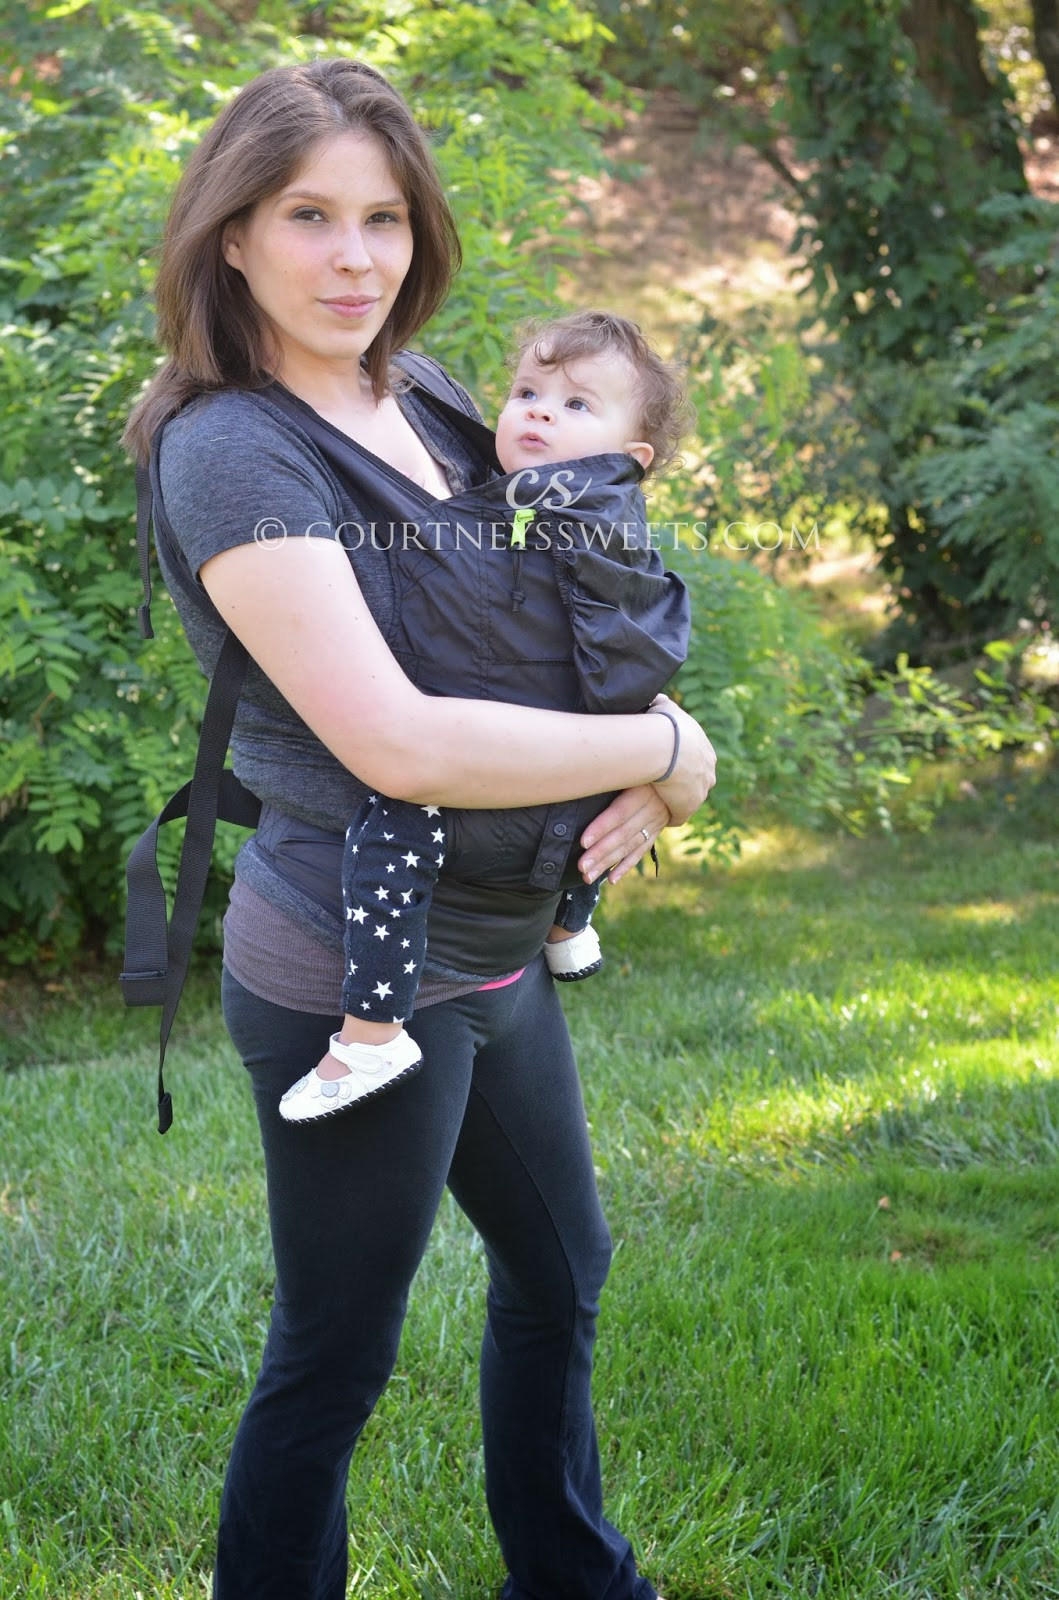 Boba Air Baby Carrier Courtney S Sweets